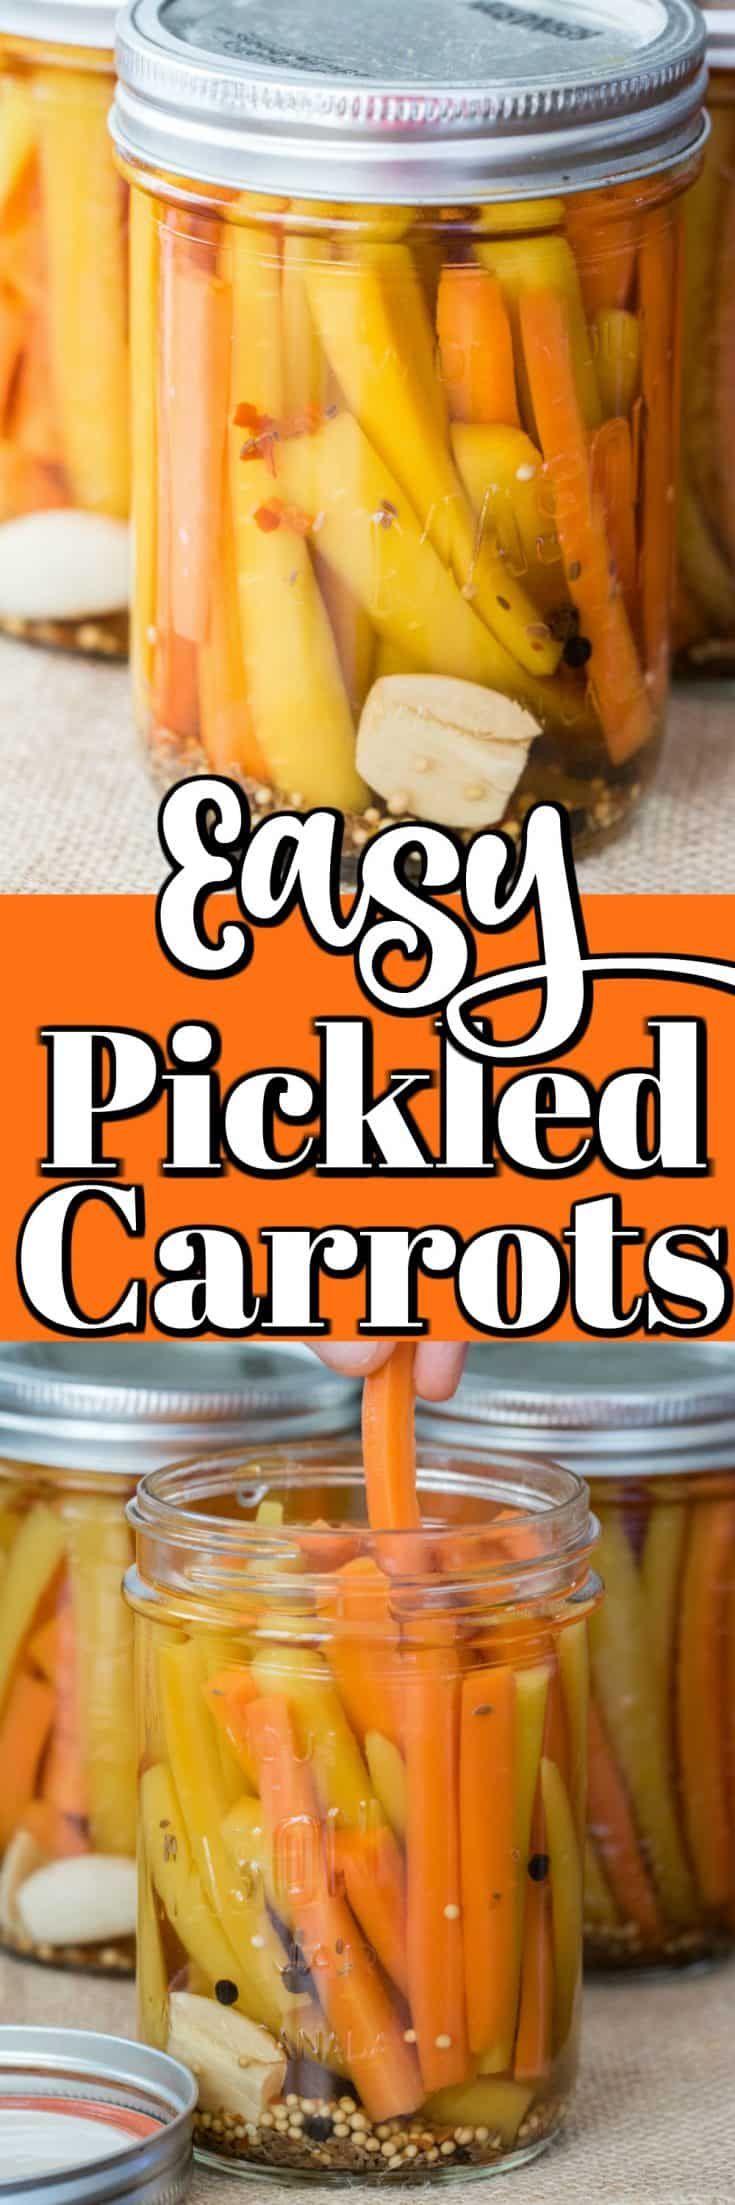 Easy Pickled Carrots are perfect as a side for lunch, make a great snack, are wonderful served along with a charcuterie and even make a great hostess gift!! #pickledcarrots #canning #carrots